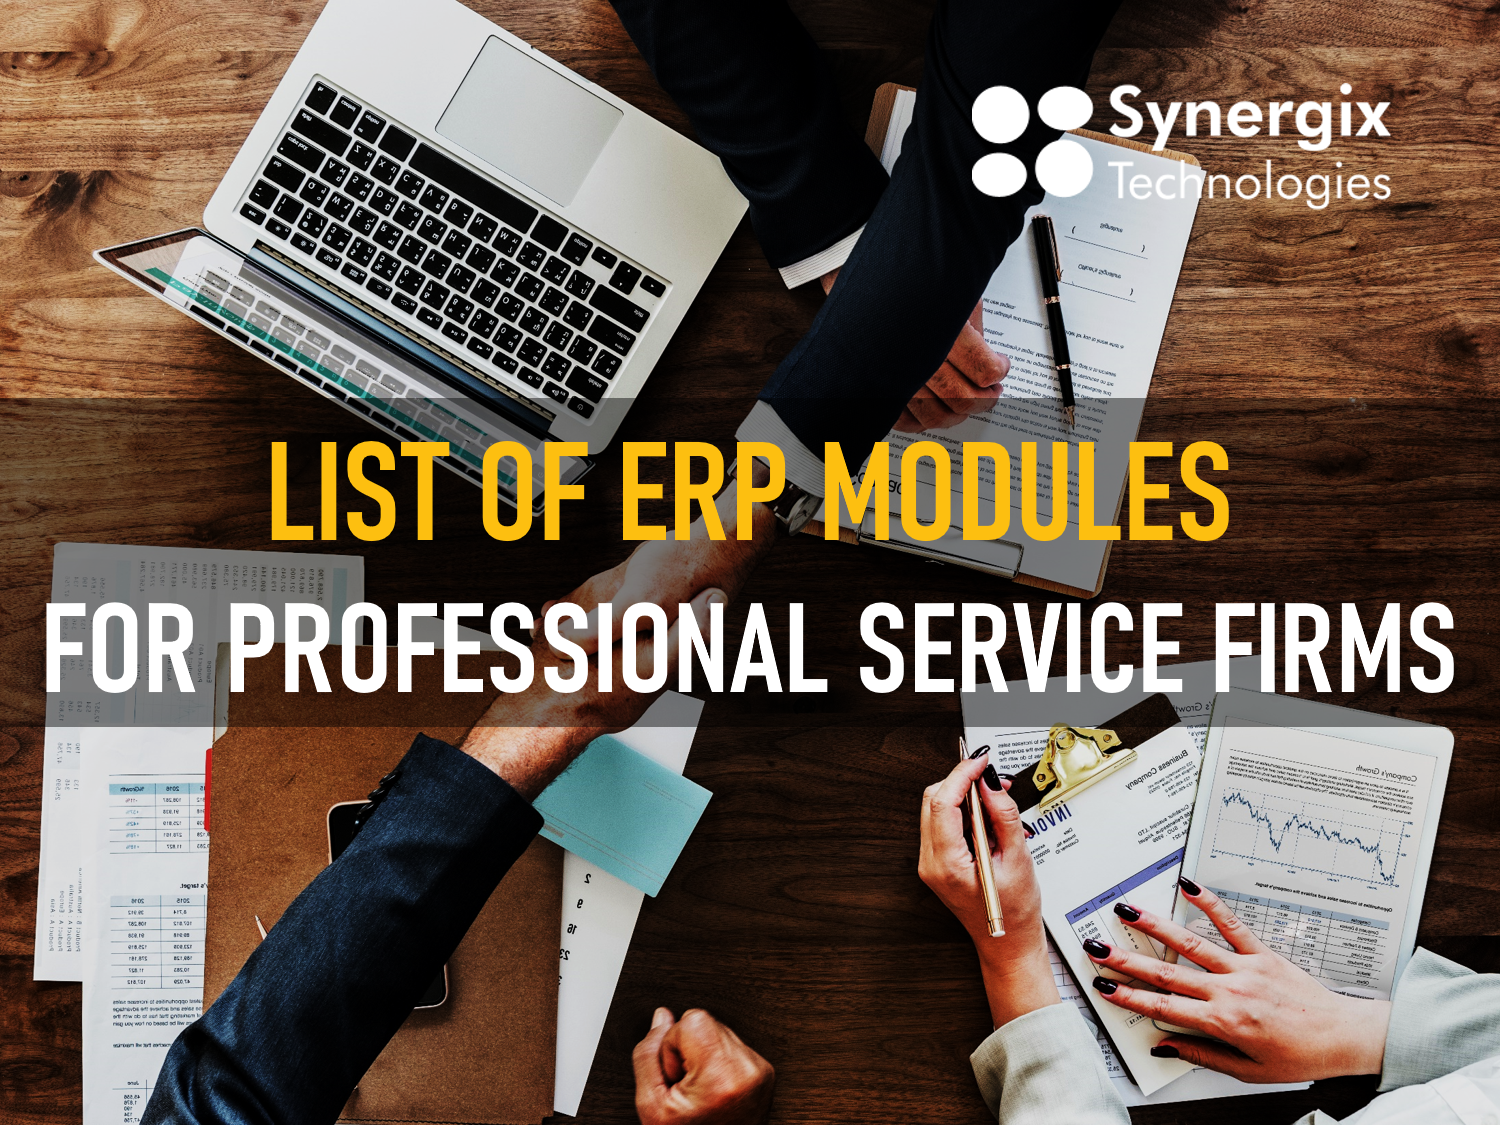 List Of ERP Modules For Professional Service Firms